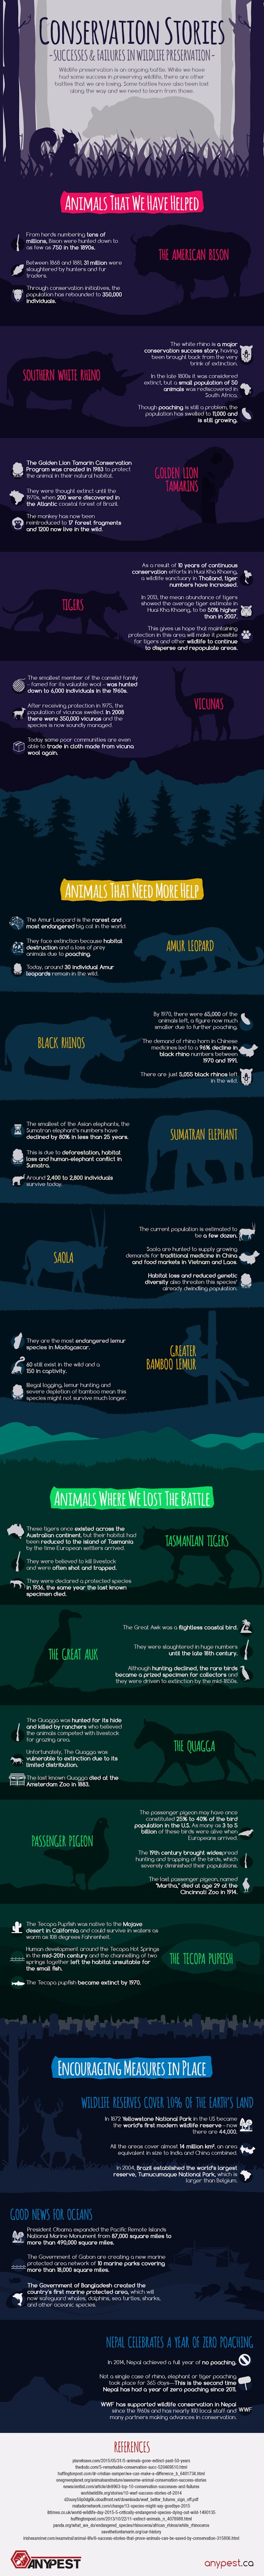 Image of My name is Brad Lewis and I am owner at Anypest. I regularly write about wildlife and I produced this info-graphic ( See Attached) outlining successes and failures in wildlife preservation. The info-graphic outlines areas of wildlife preservation where we have been successful, preservation battles we are losing, and battles we have already lost. For example the American Bison was hunted down to 750 in 1890, but thanks to preservation efforts this has increased to 350,000. Unfortunately there are other battles we are losing, such as with the beautiful Amur Leopard. There are now only 30 left, and we face a difficult fight to save them. The important thing is that there is still time to make a difference and it's not too late. Animals such as Tasmanian Tiger have been extinct since 1936 and there is nothing we can do about it, so let's hope the same doesn't happen to the Amur Leopard. Find out more about animals we need to save in the info-graphic!